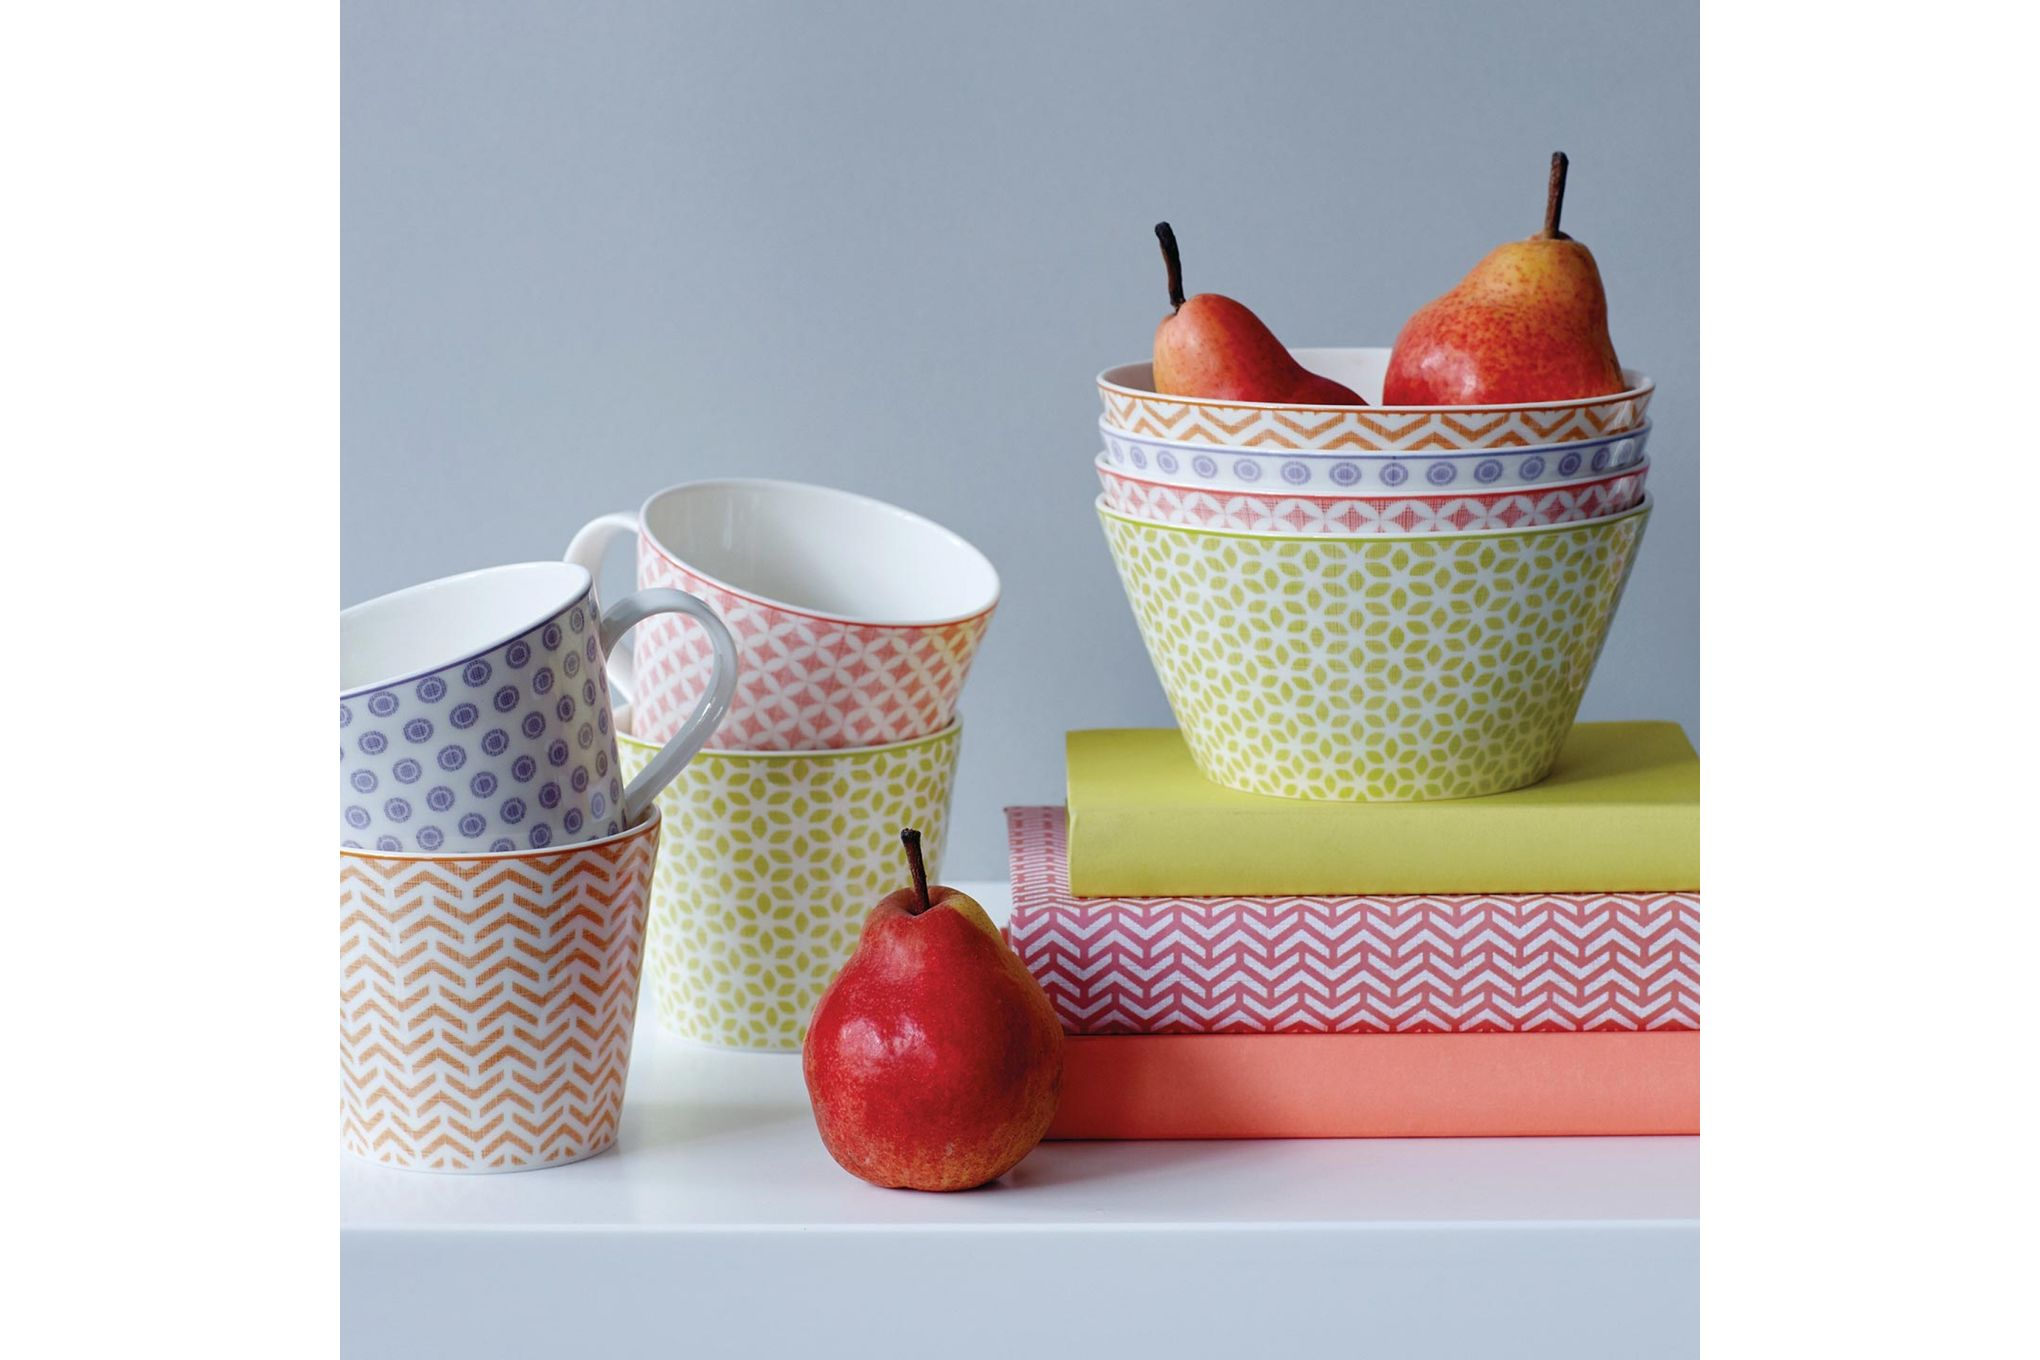 Royal Doulton Pastels Cereal Bowl - Set of 4 Accent 15cm thumb 2